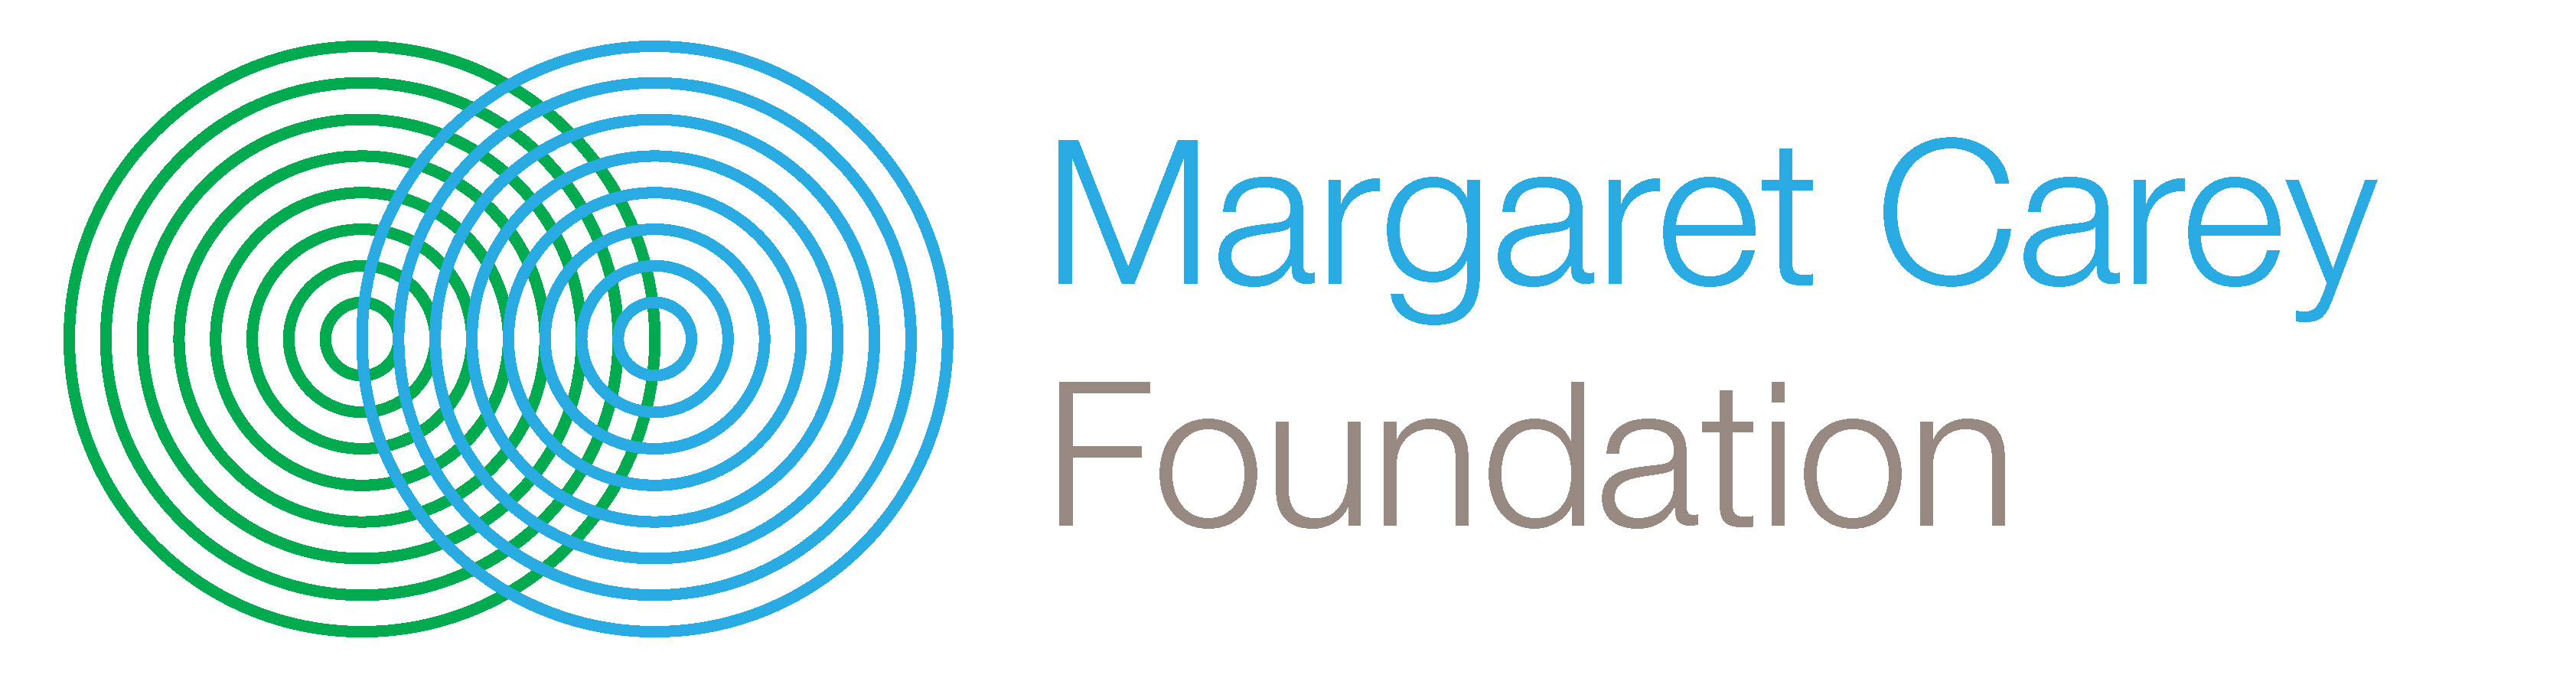 Margaret Cary Foundation